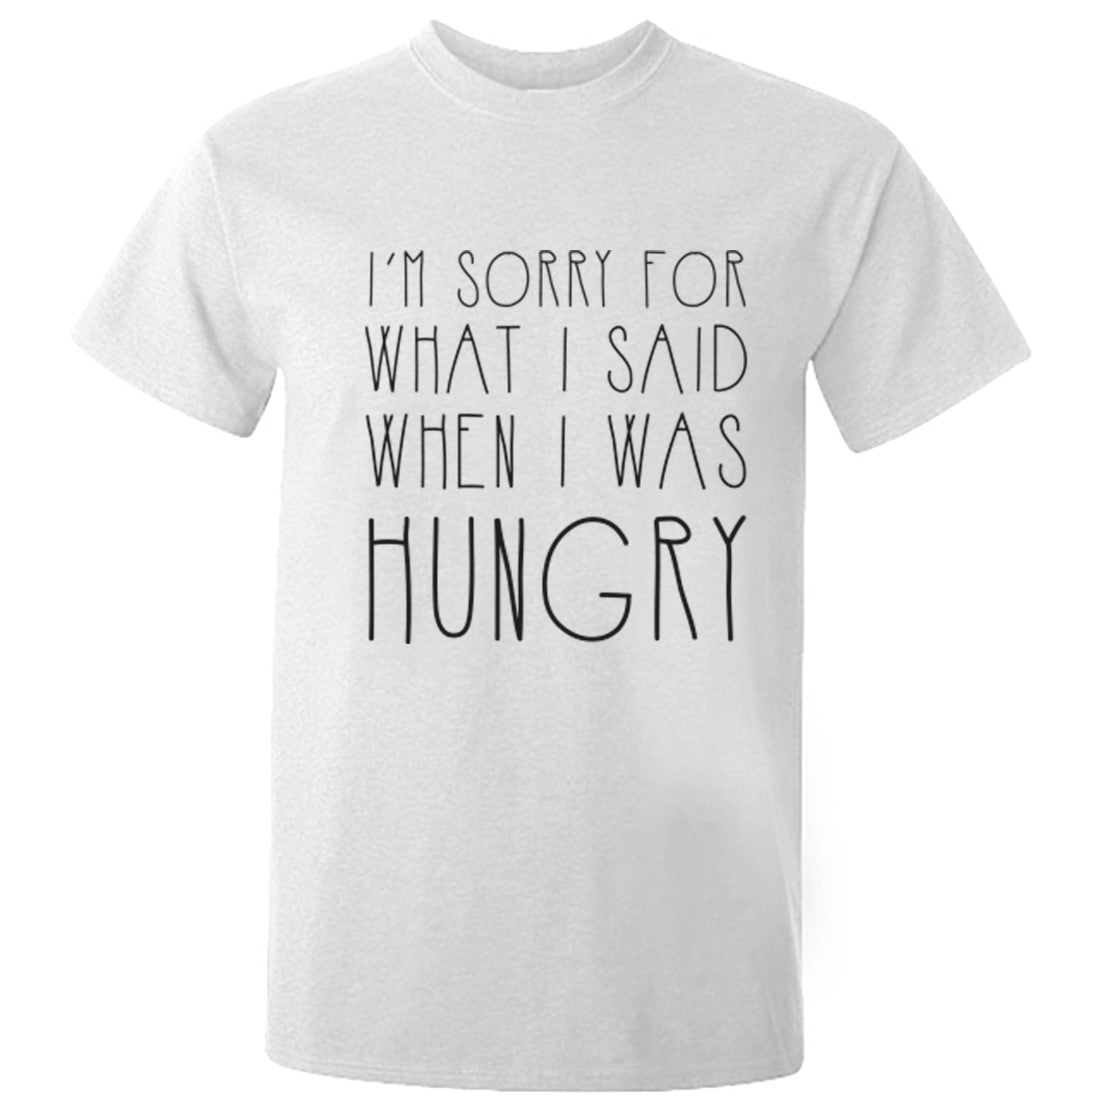 I'm Sorry For What I Said When I Was Hungry Unisex Fit T-Shirt K0450 - Illustrated Identity Ltd.